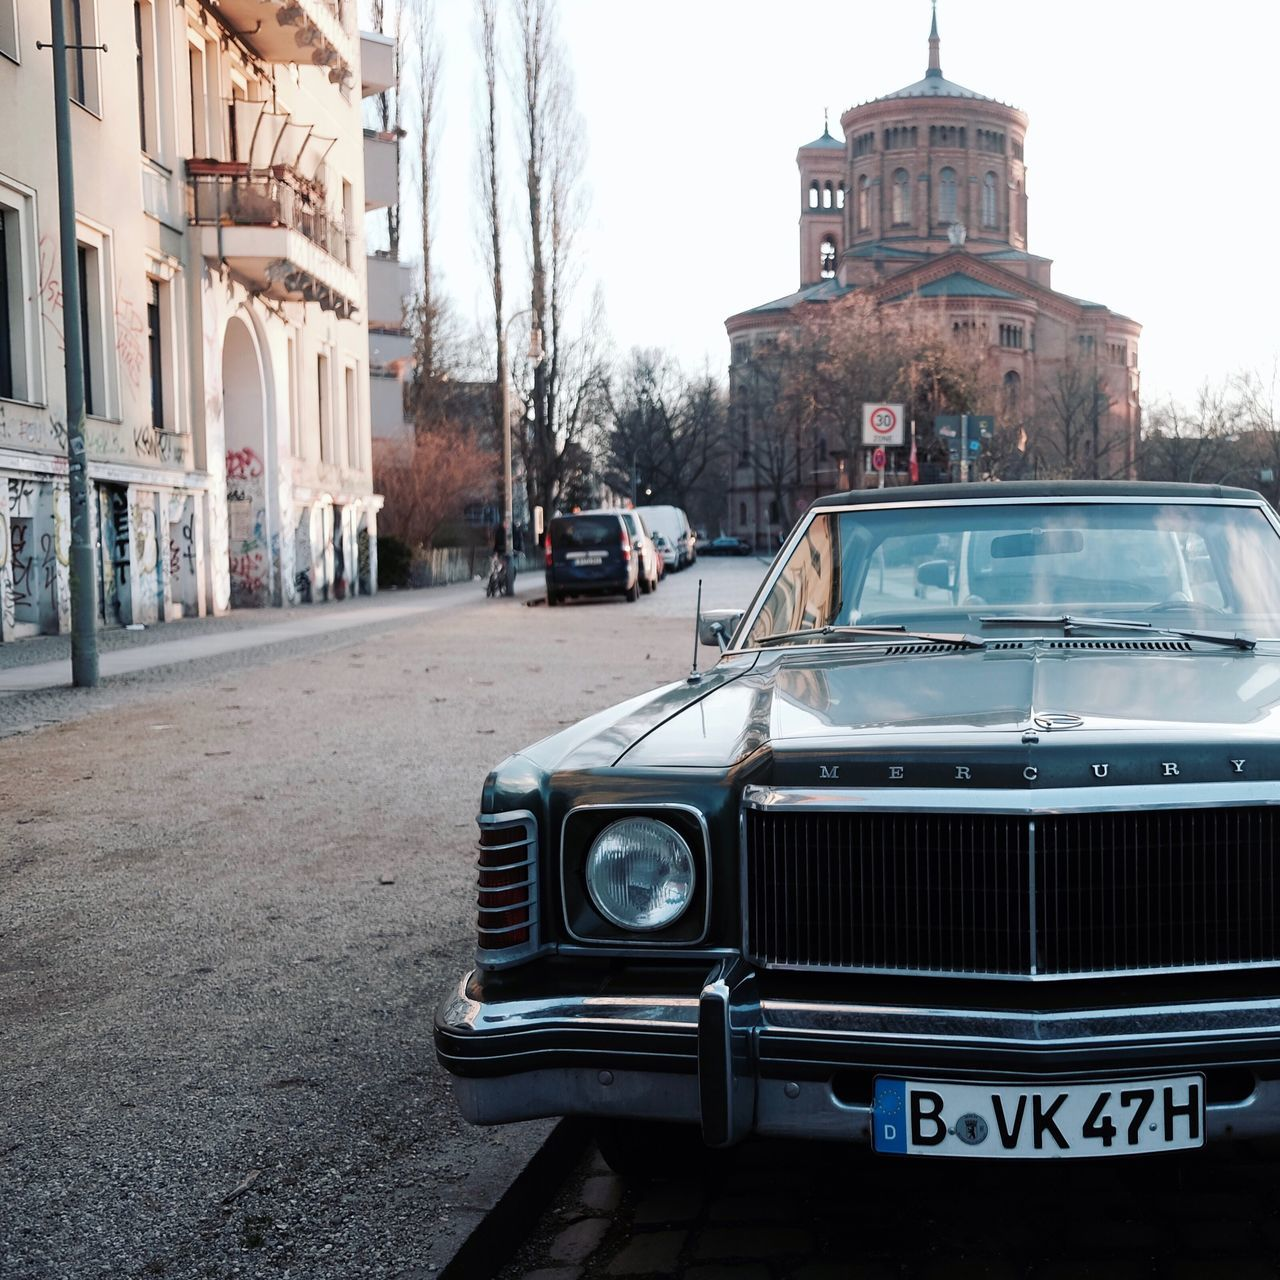 Car Old-fashioned Old City Building Exterior Transportation The Past Architecture Built Structure History Outdoors No People Day Collector's Car